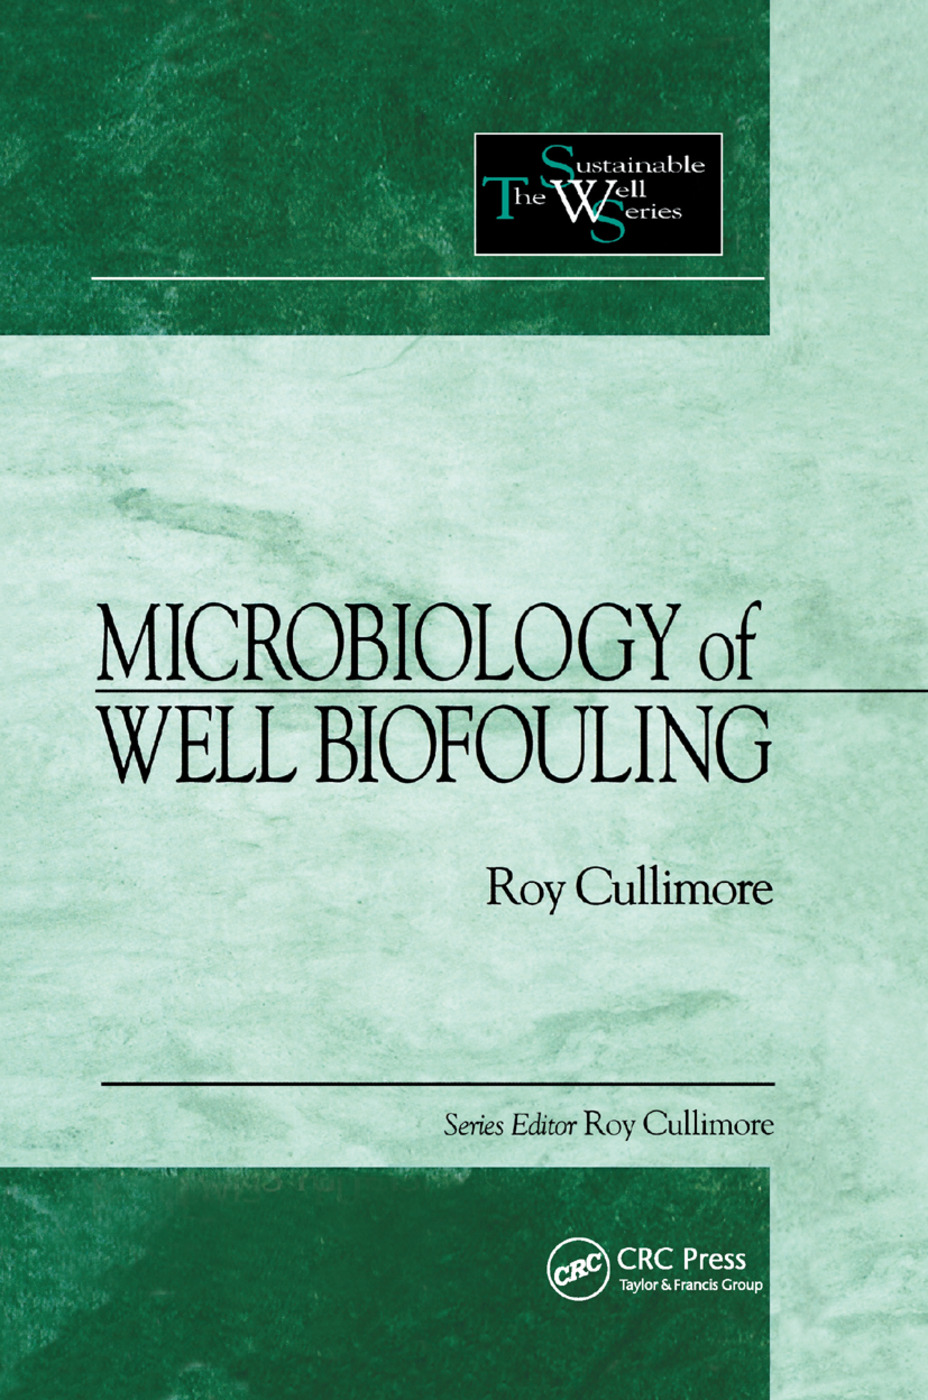 Microbiology of Well Biofouling: 1st Edition (Paperback) book cover